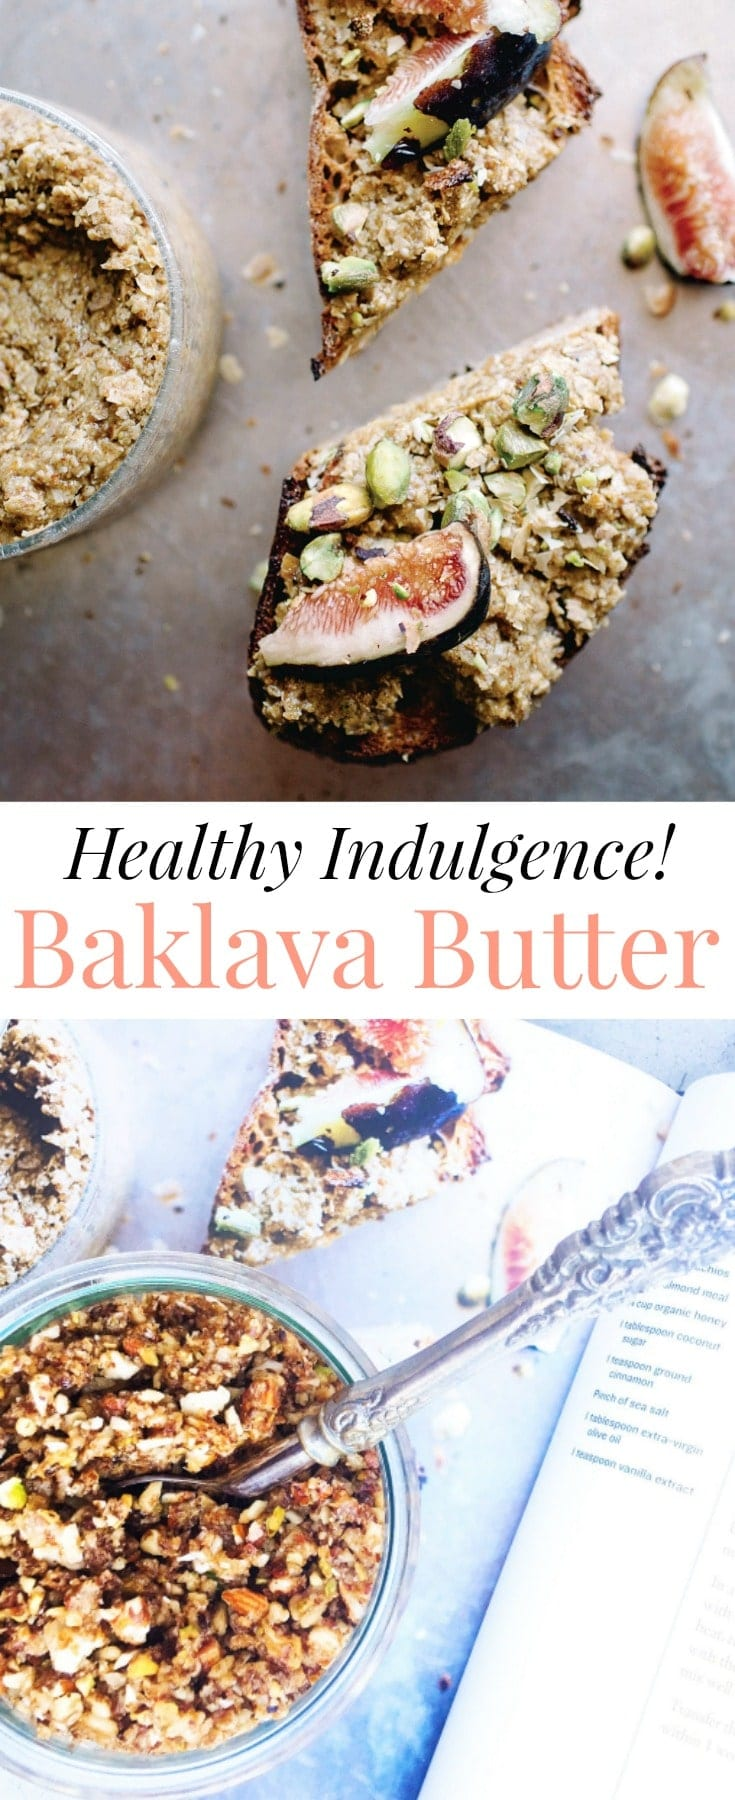 This easy, homemade Baklava Butter is a deliciously healthy indulgence. Even better, it takes less than 10 minutes to make & stores well in the refrigerator for up to 1 week. Eat it straight off the spoon, or add it to yogurt or oatmeal, or spread it over whole grain gluten free toast for a nourishing breakfast or snack.